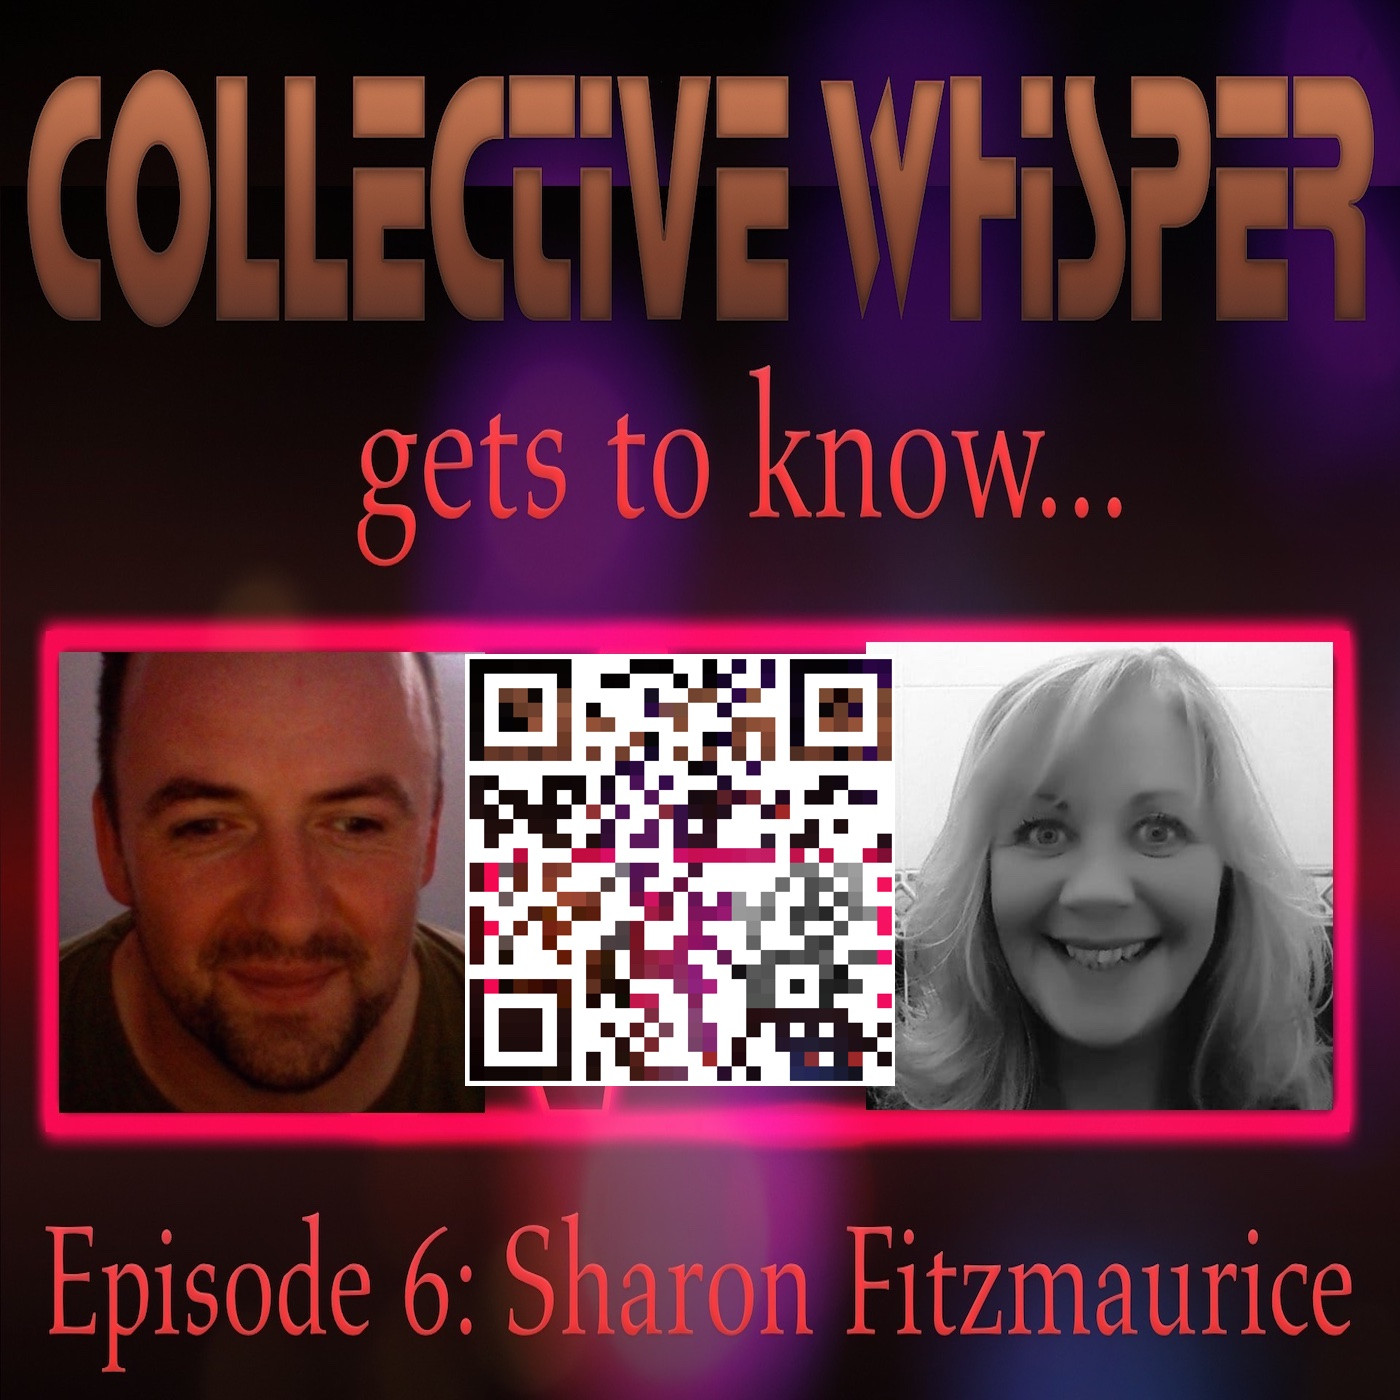 Collective Whisper gets to know.....Sharon Fitzmaurice